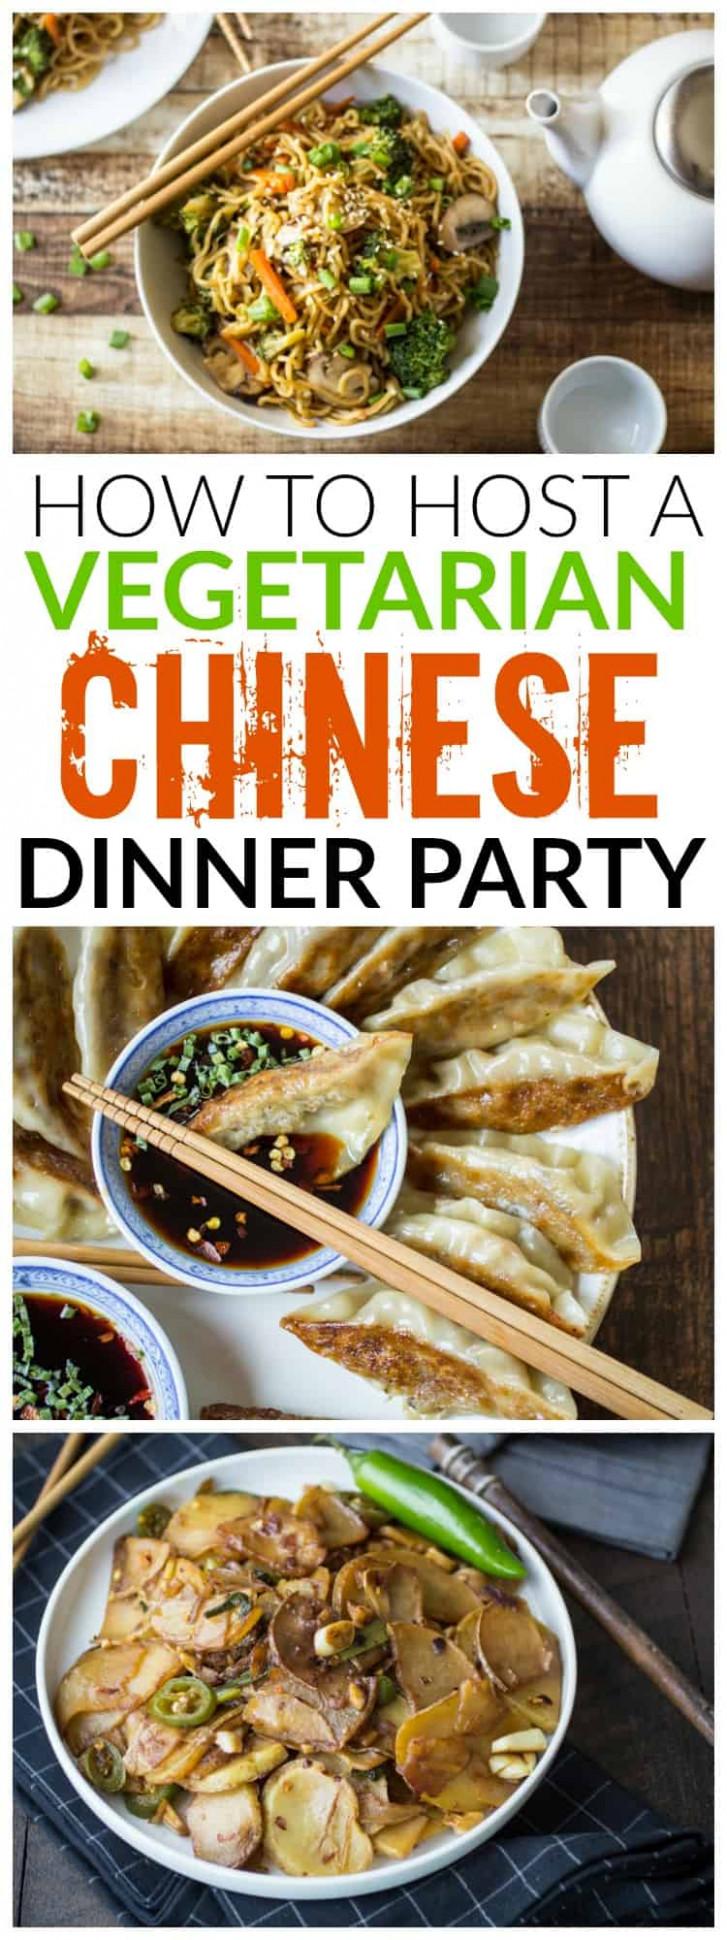 Vegetarian Chinese Dinner Party Menu - The Wanderlust Kitchen - recipes vegetarian dinner party